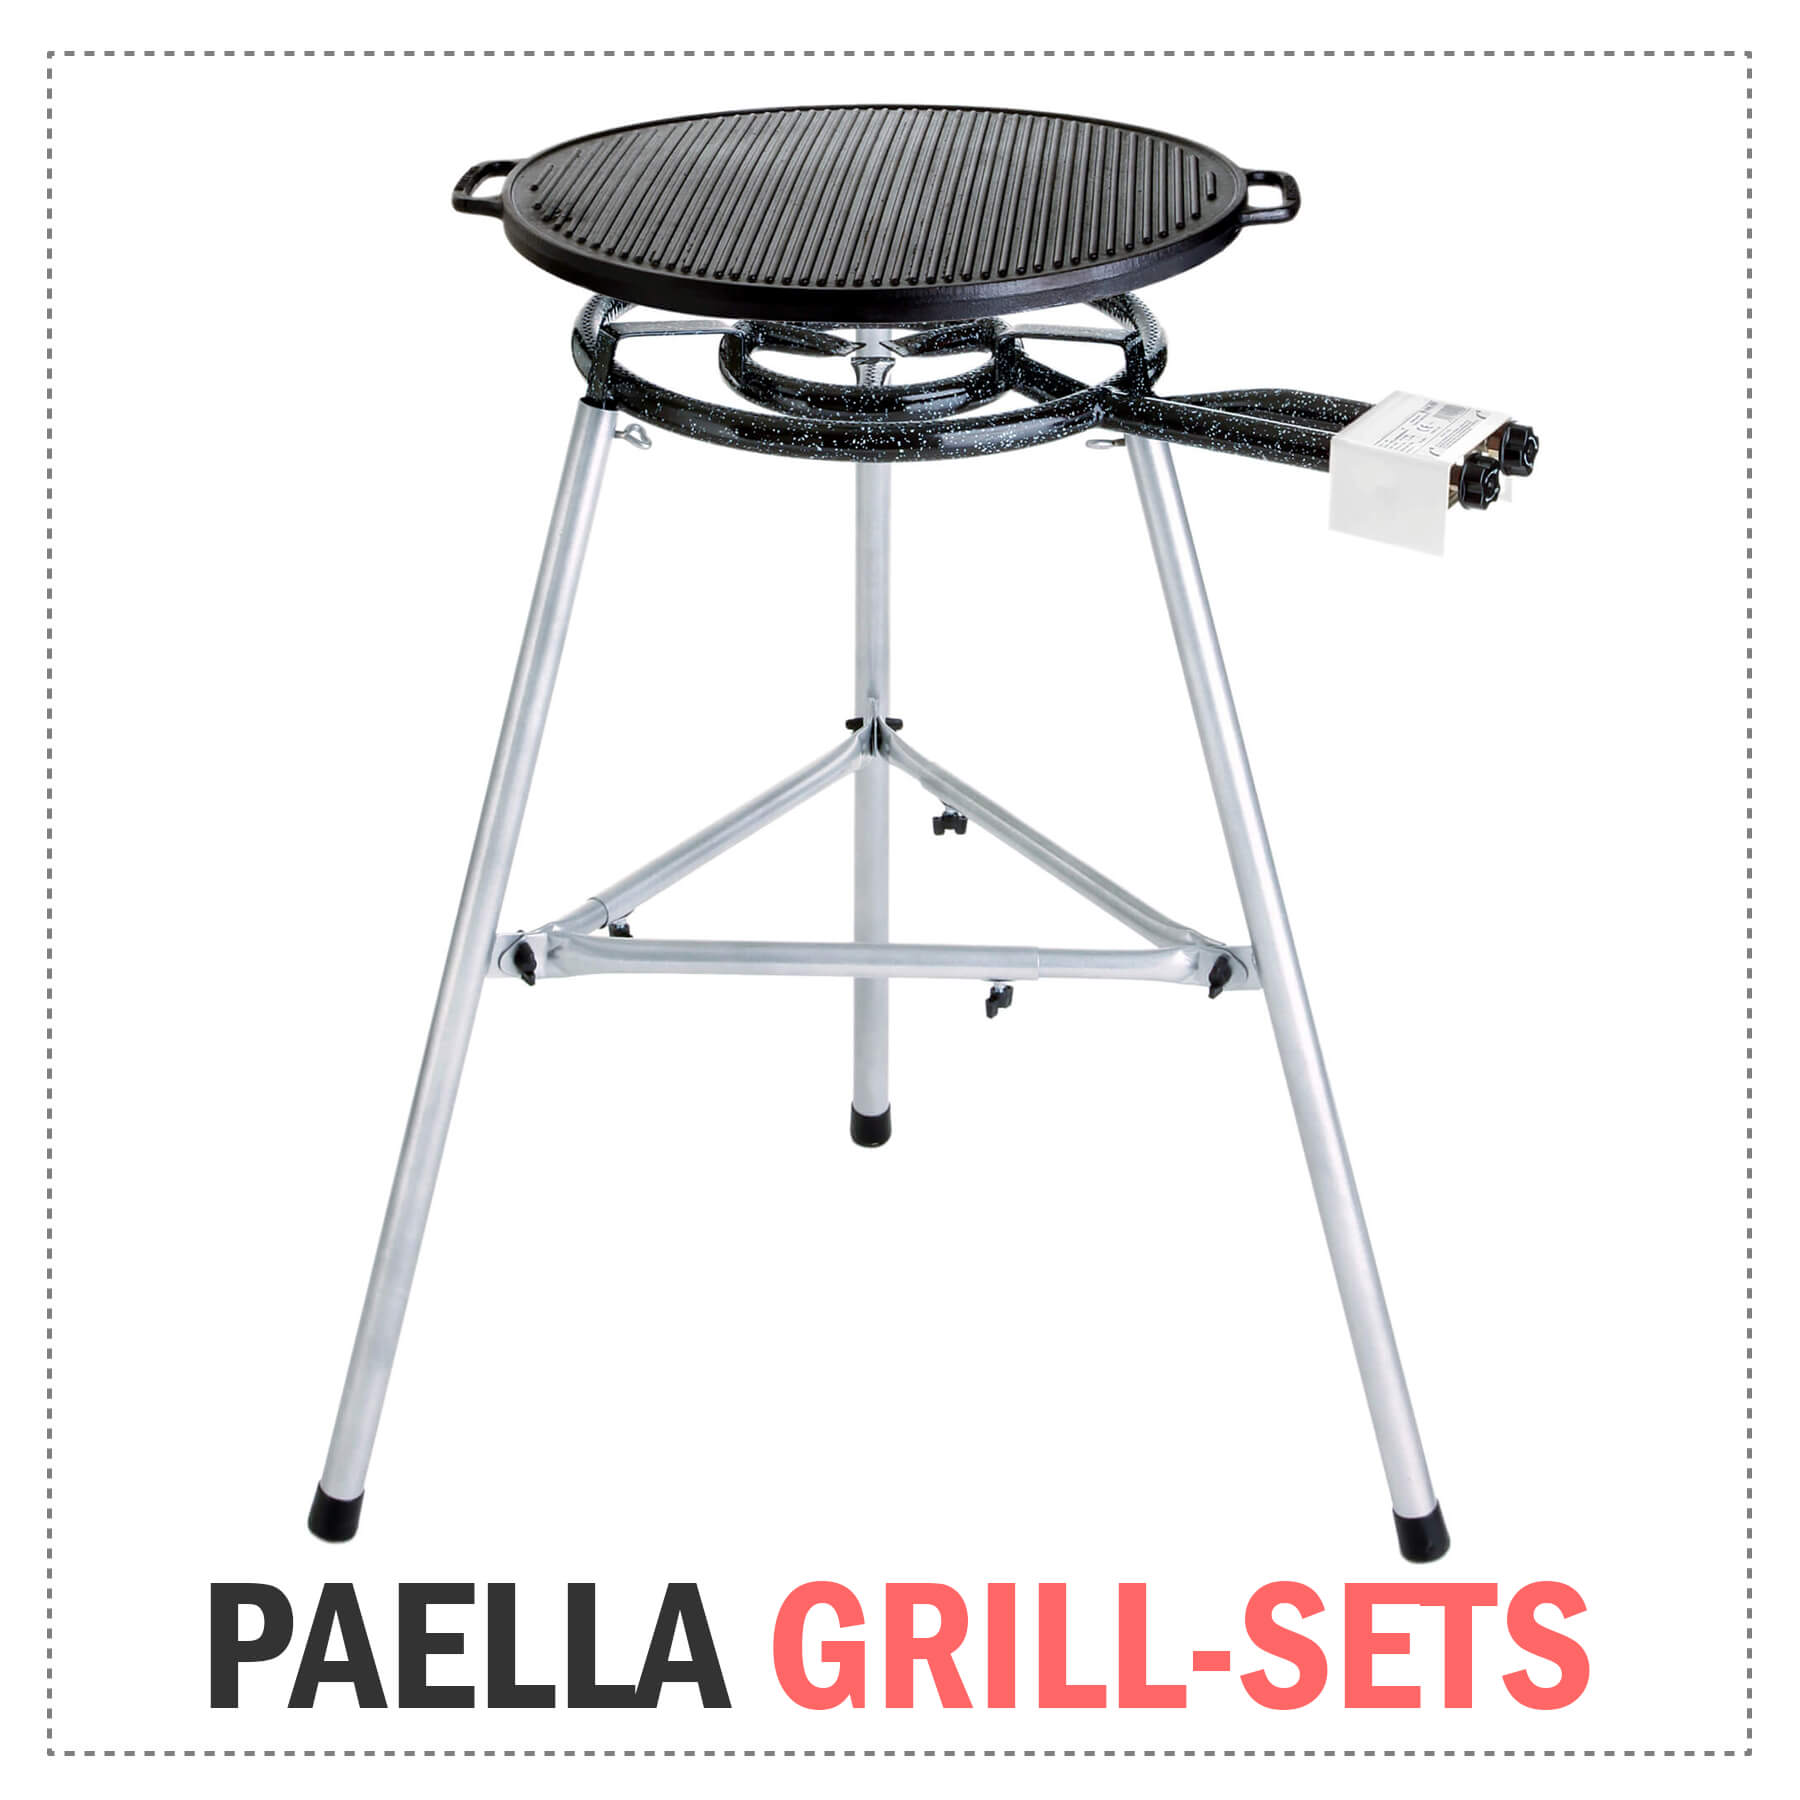 Paella-Grill Sets